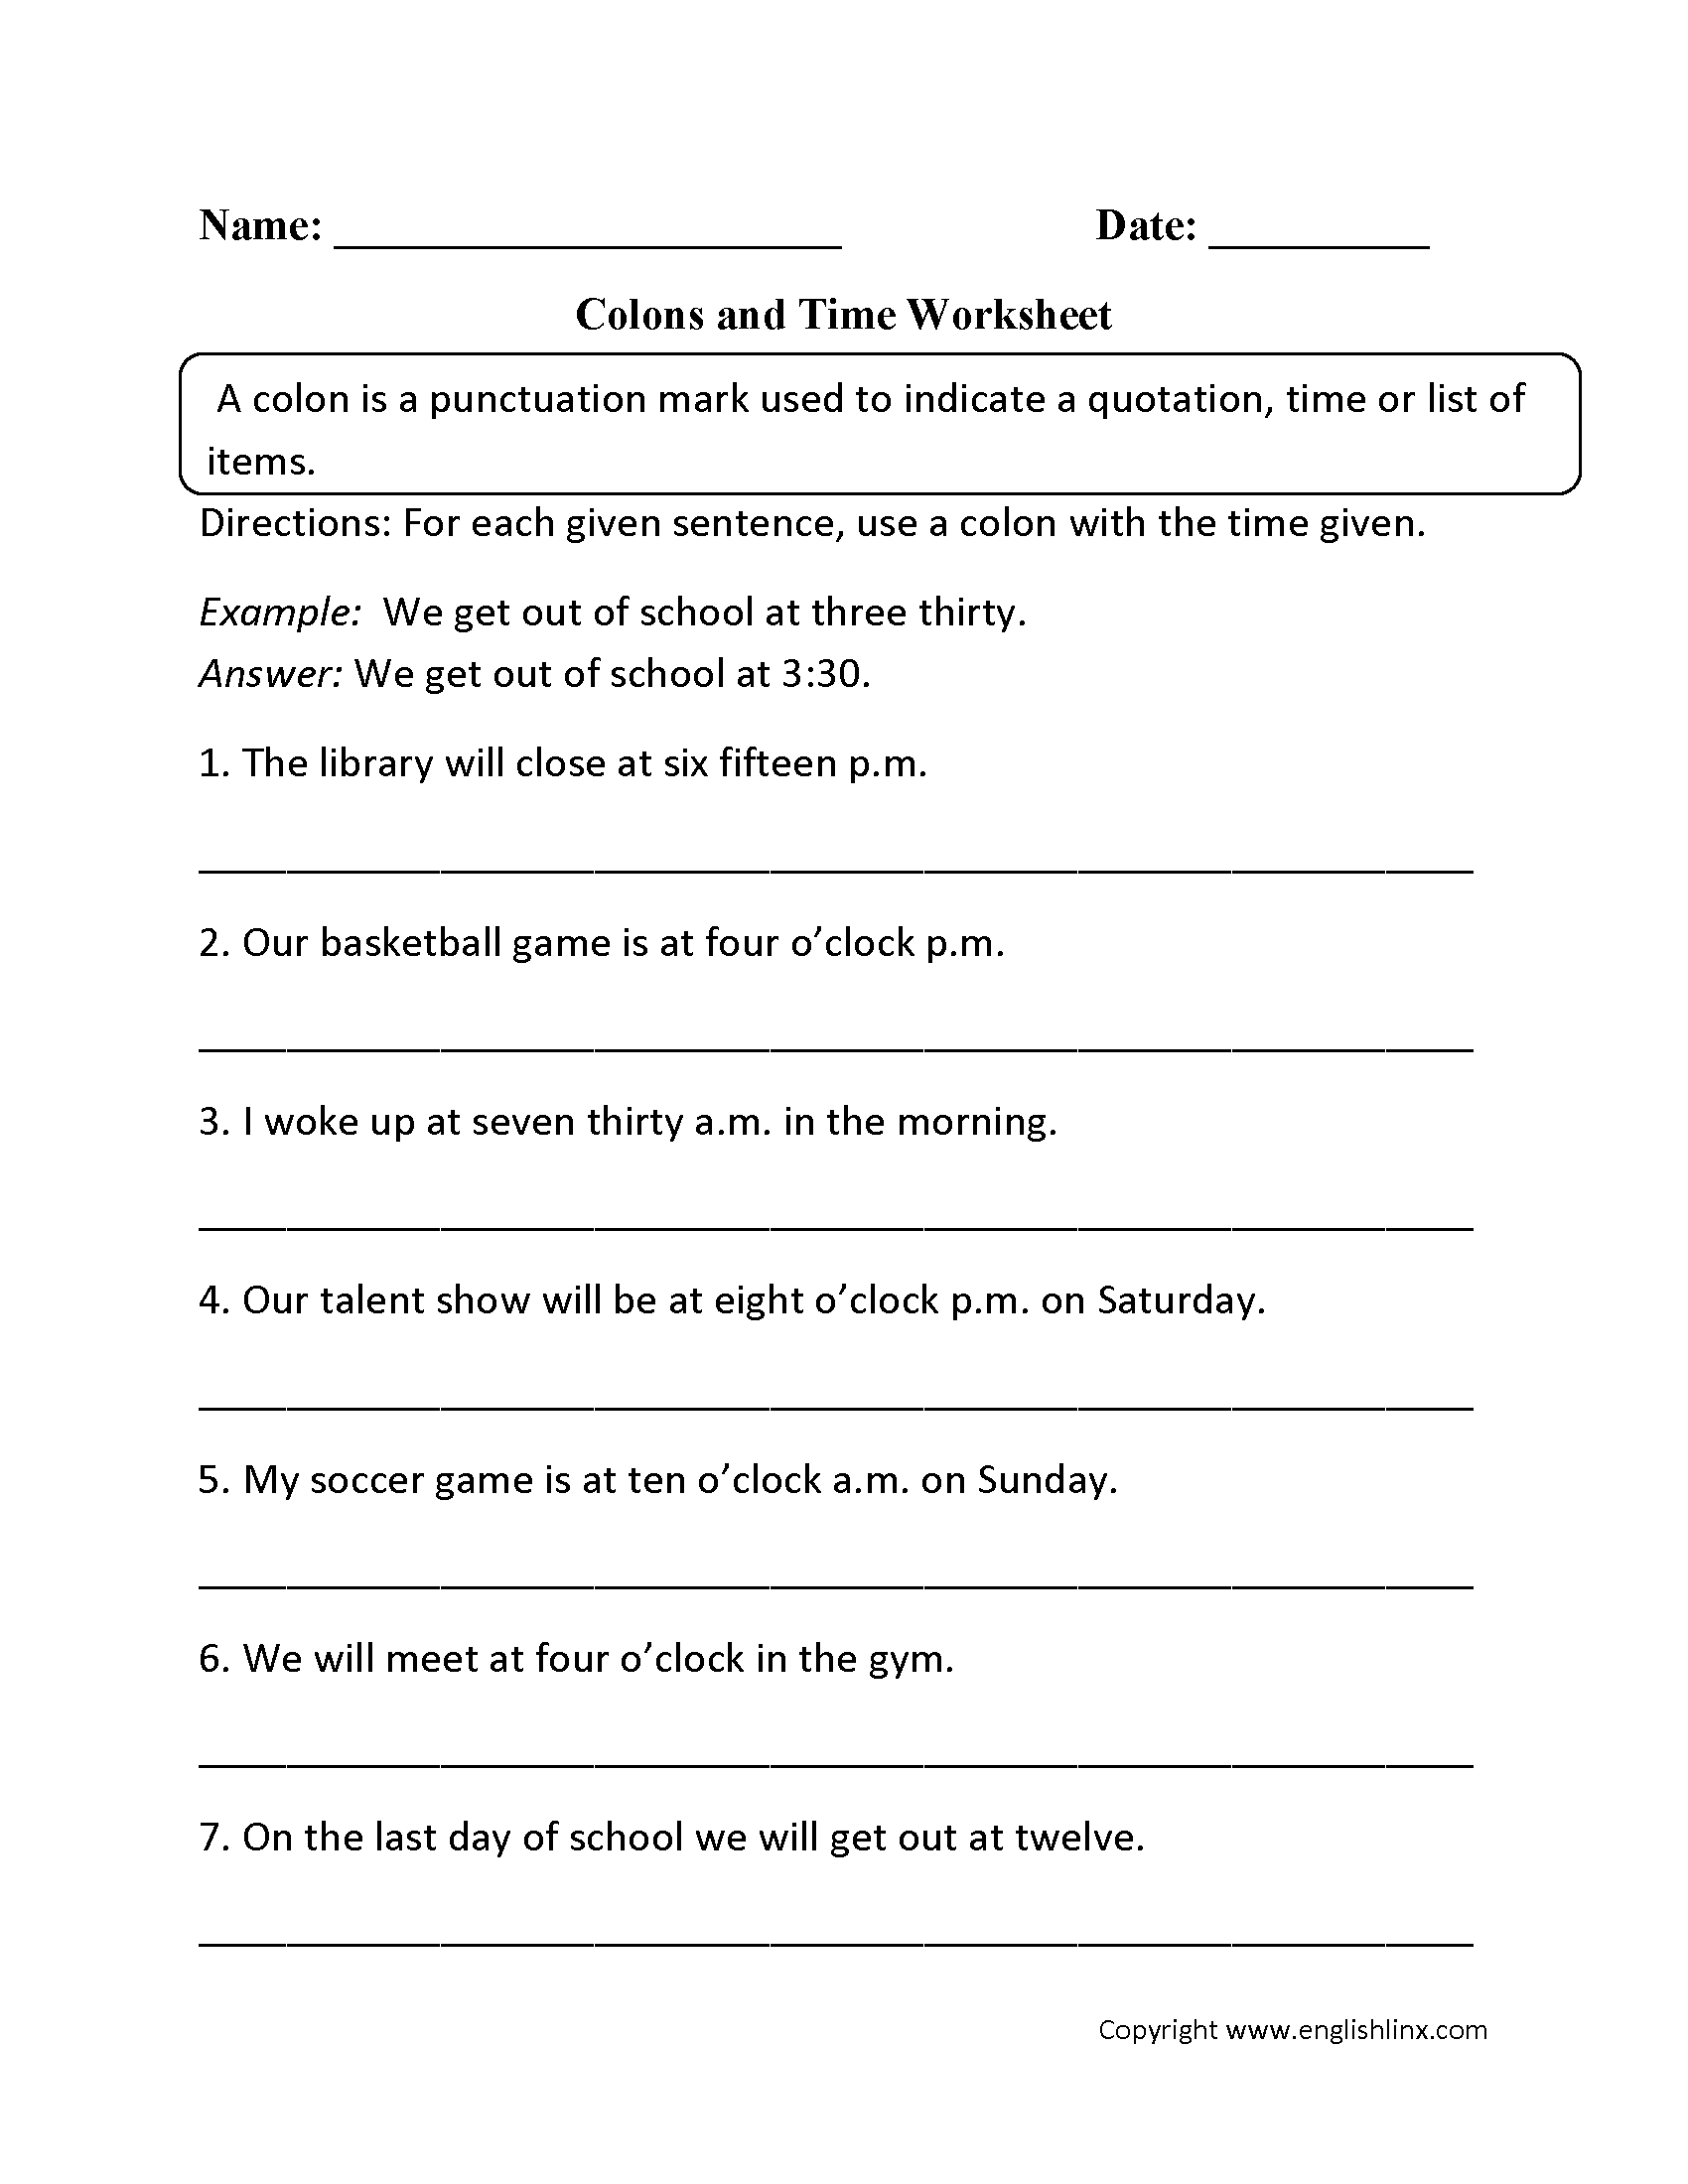 Colon worksheets englishlinx board pinterest punctuation colon worksheets robcynllc Gallery